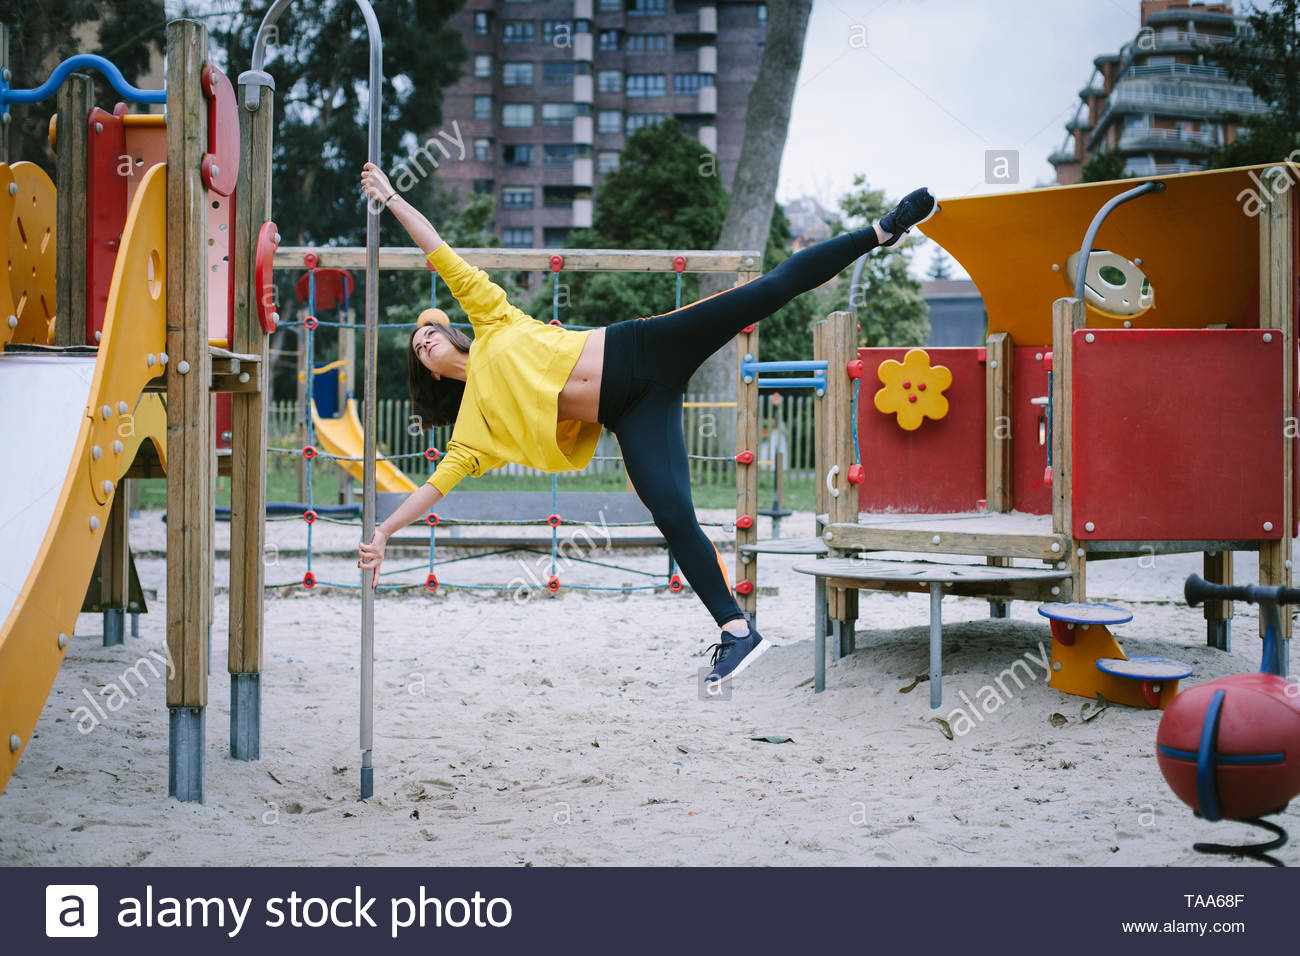 Strong fit woman doing calisthenics exercise in city park. - Stock Image